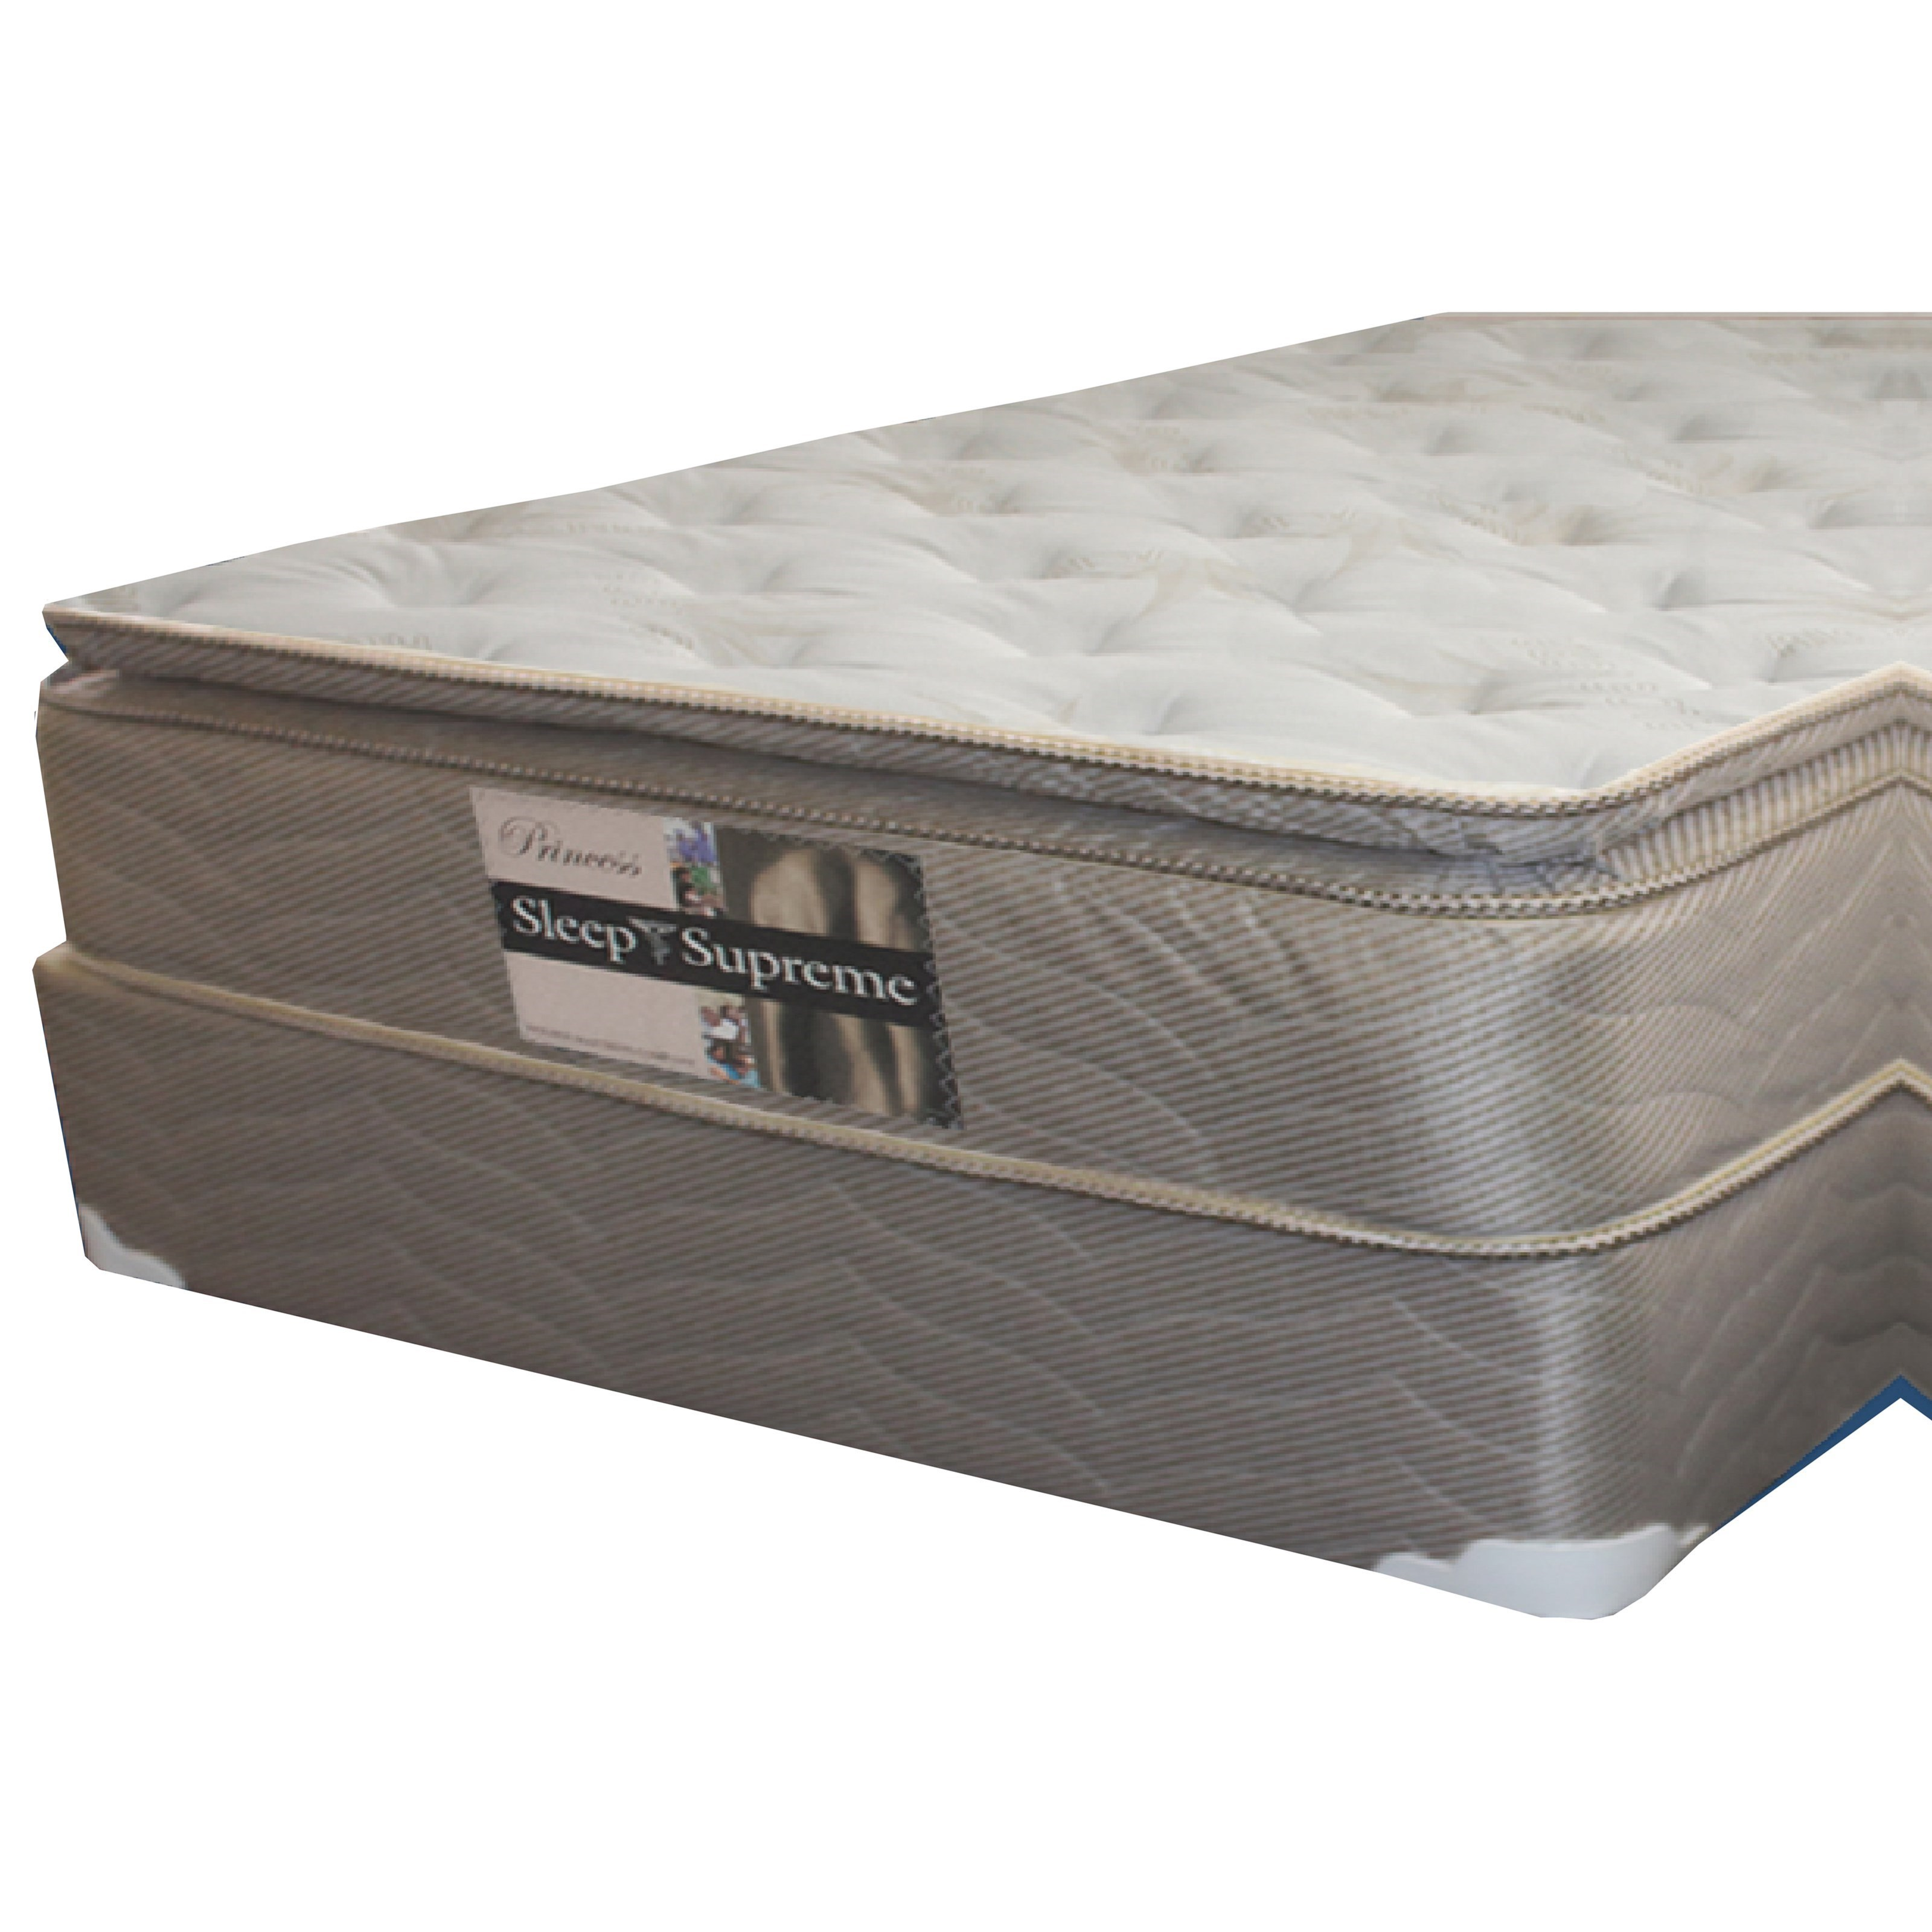 Golden Mattress Company 6-Princess PT Full Pillow Top Mattress Set - Item Number: 6-PrincessPT-F+Woodfndtn-F